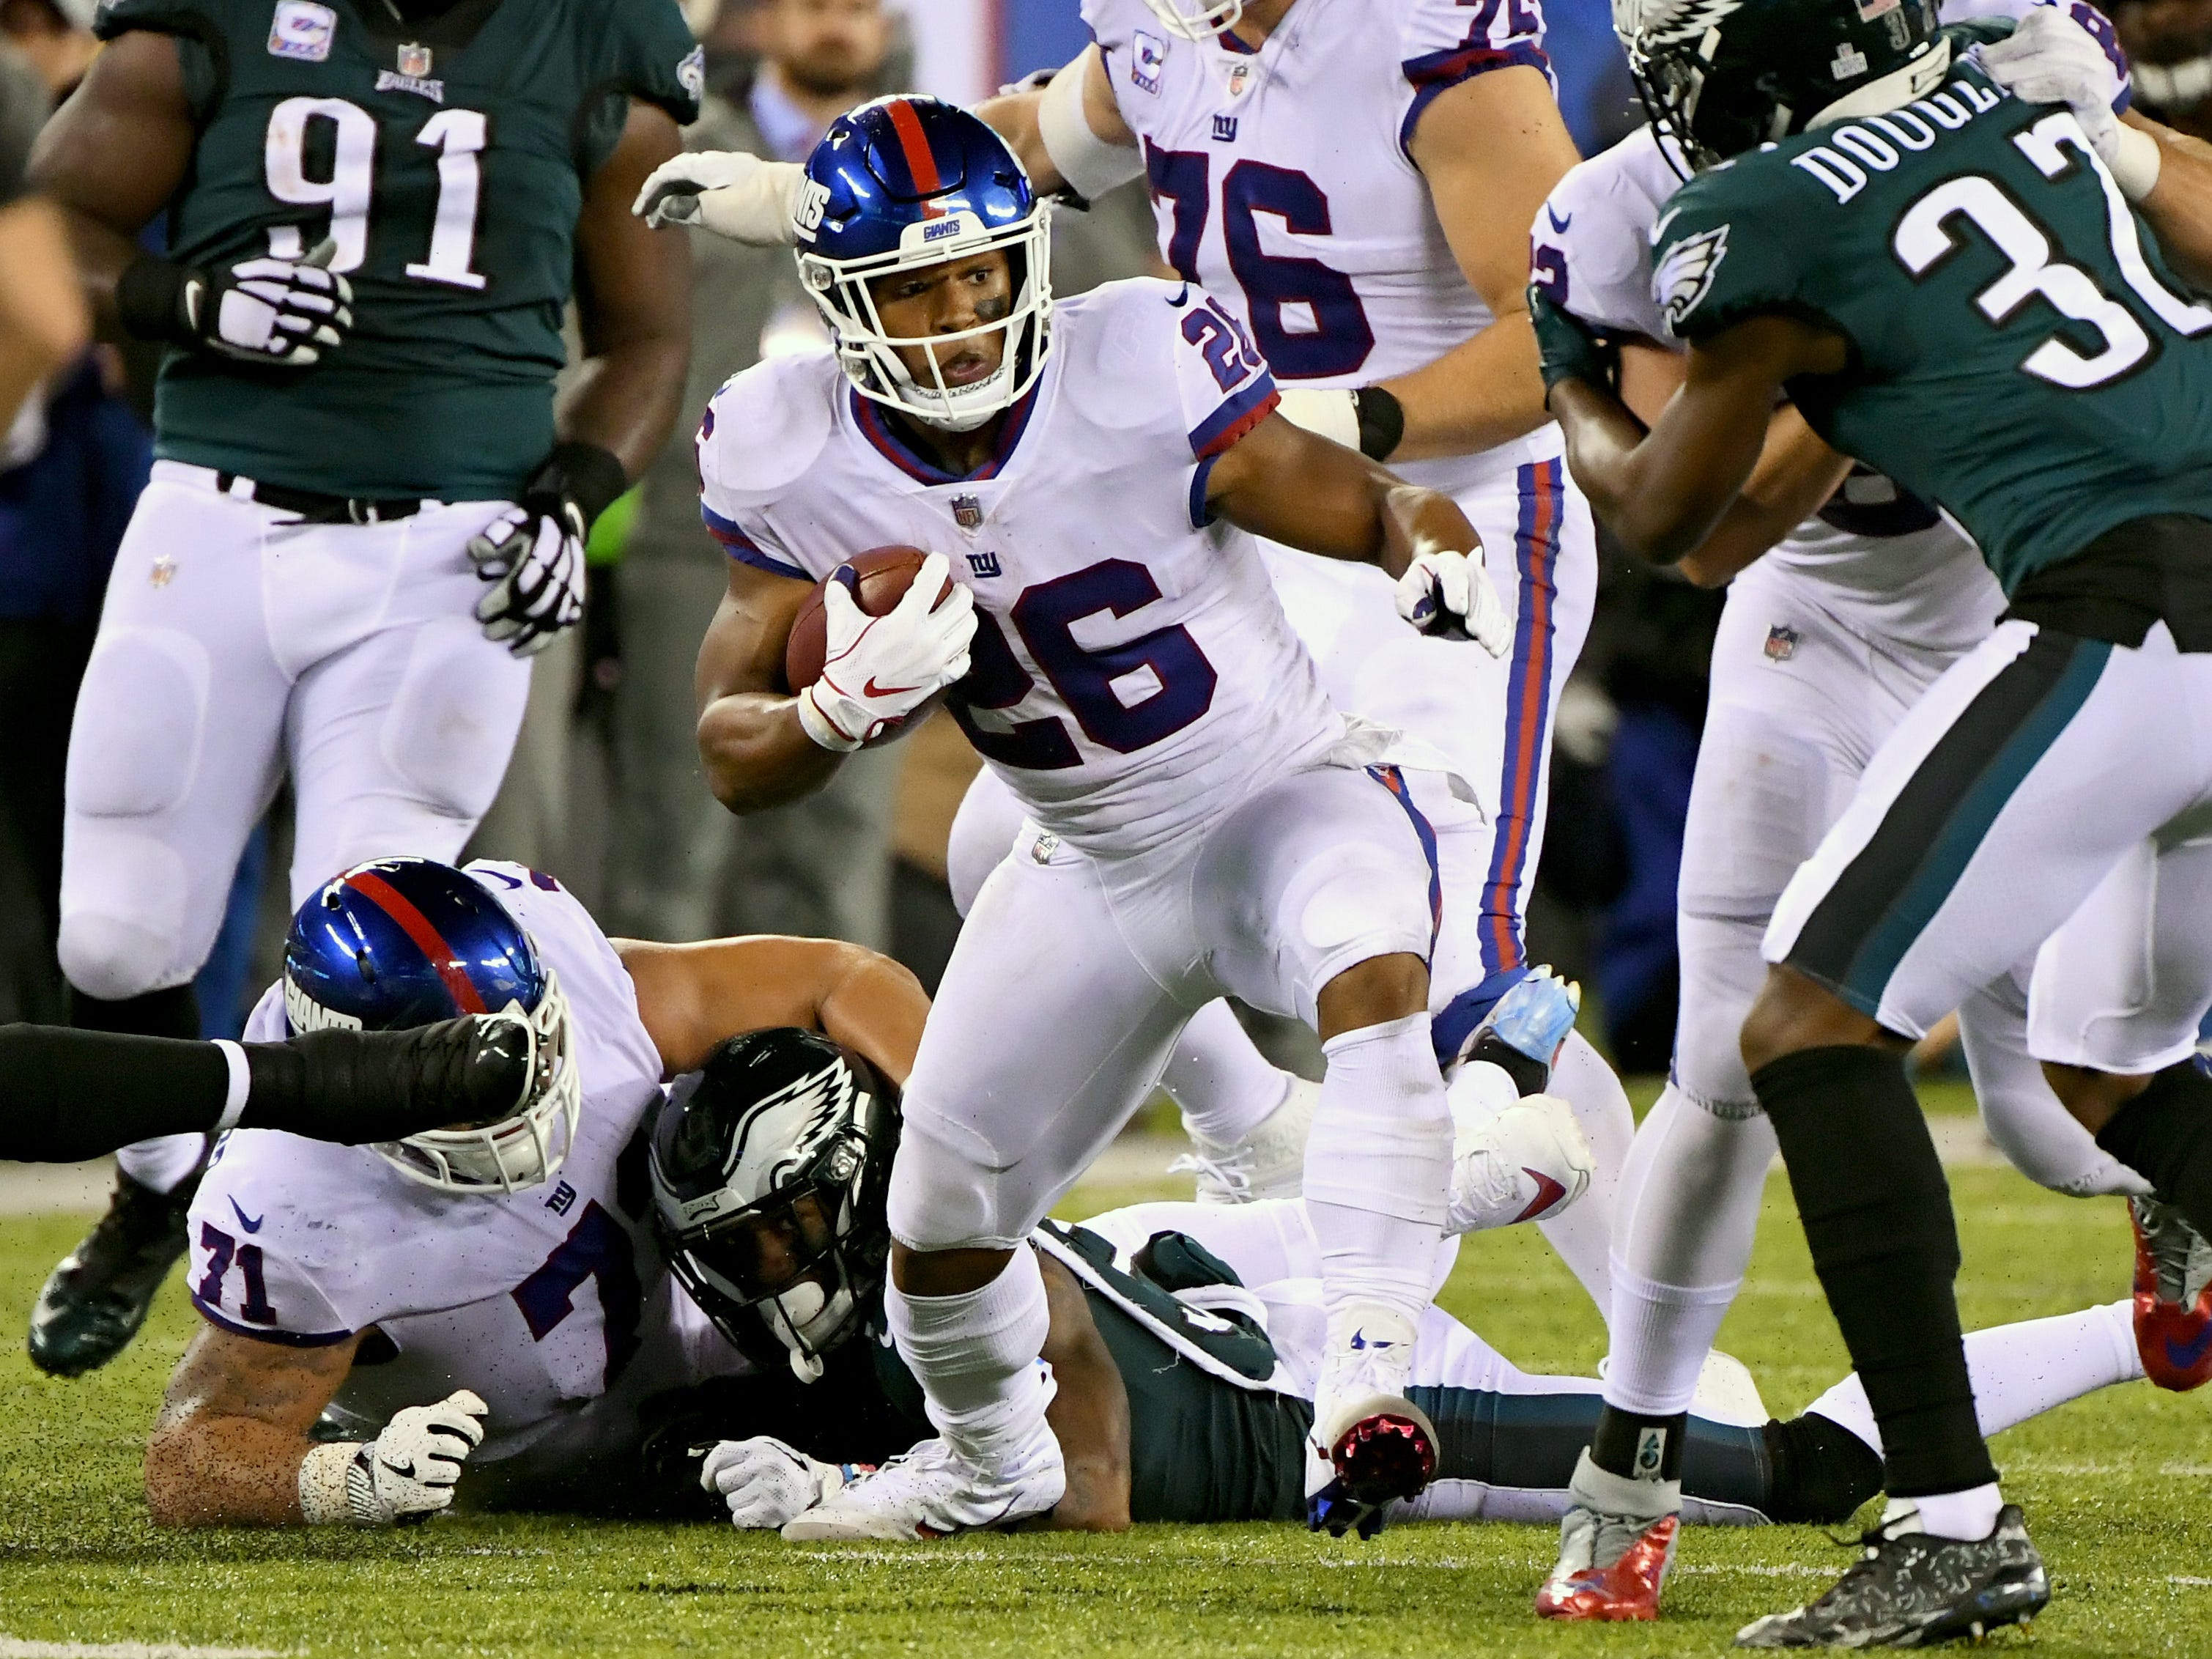 New York Giants running back Saquon Barkley runs the ball against the Eagles in the second quarter at MetLife Stadium.